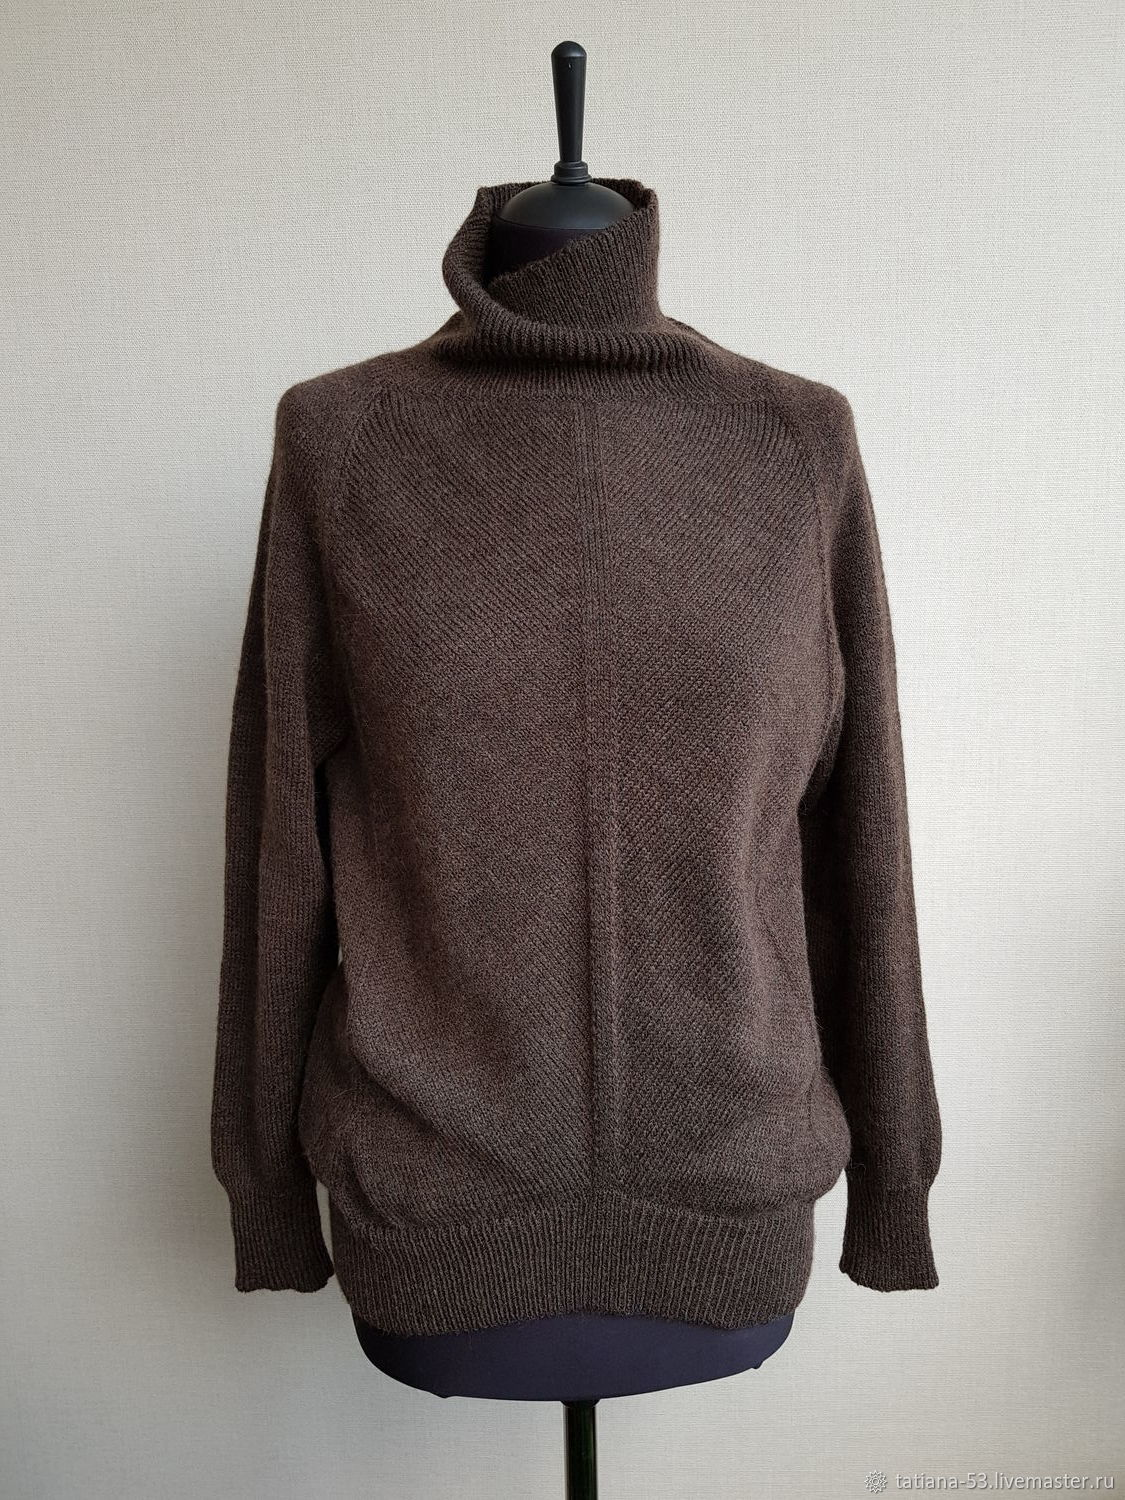 Brown loose-fitting sweater with Raglan sleeves and high collar, Sweaters, Moscow,  Фото №1